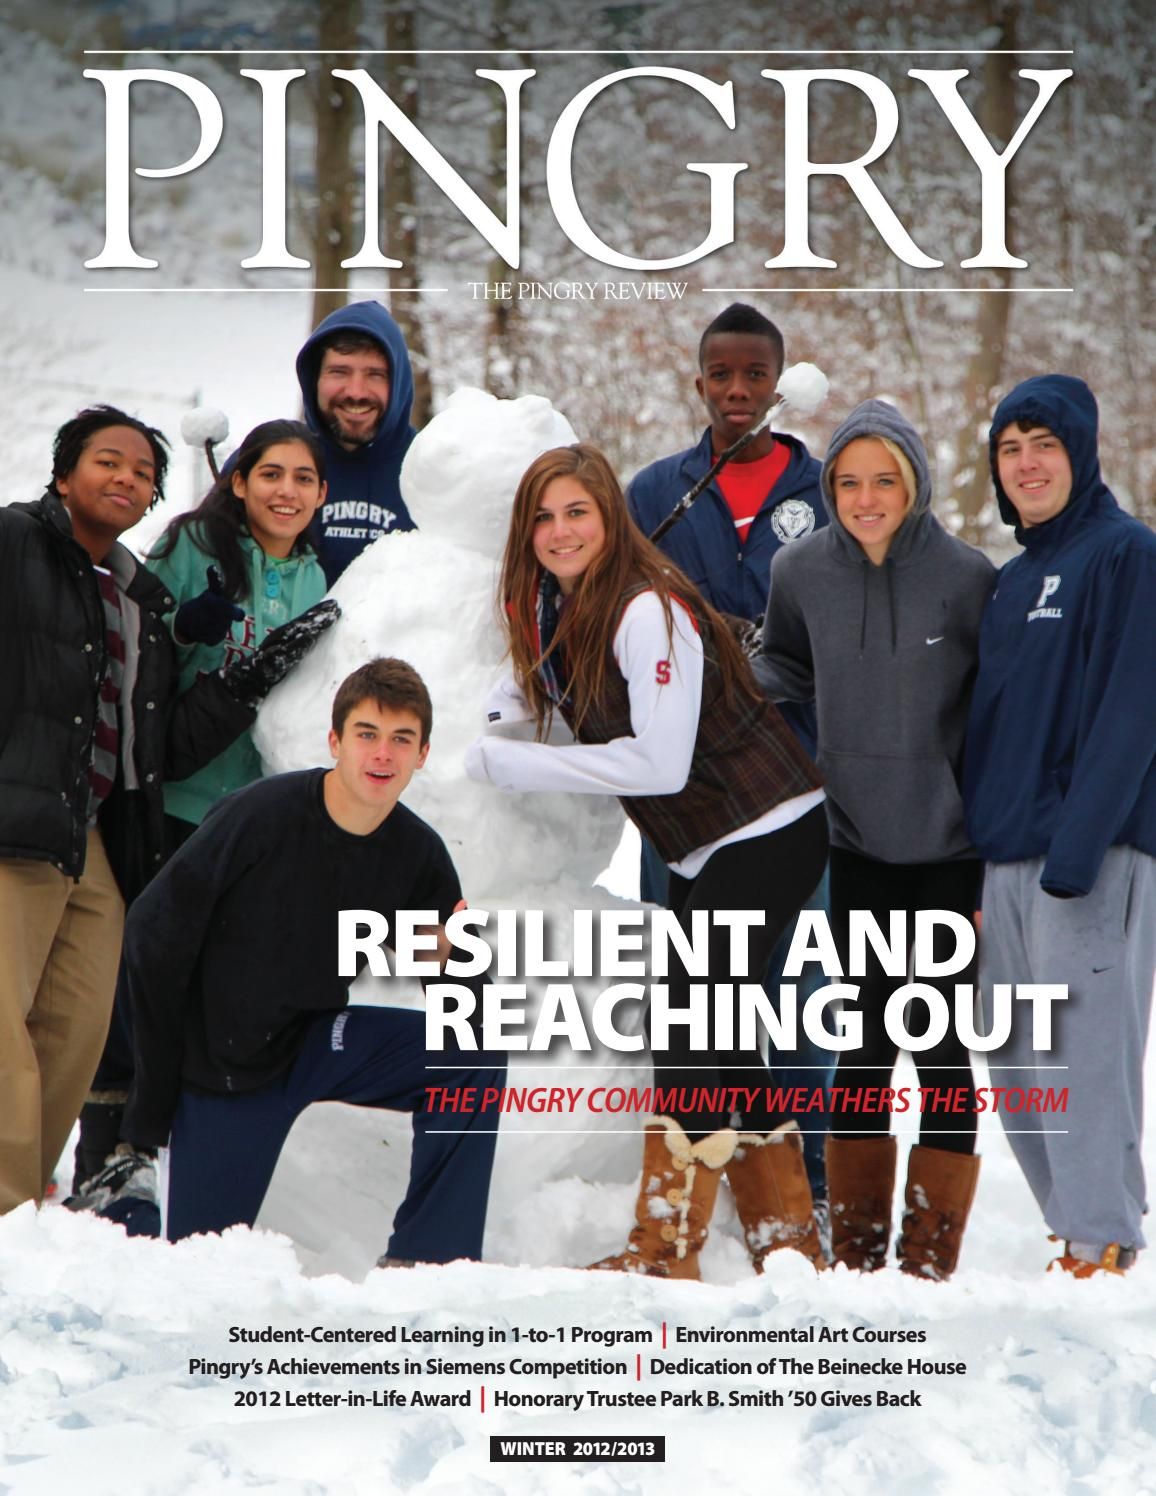 Pingry Review Winter 2012 2013 By The Pingry School Issuu